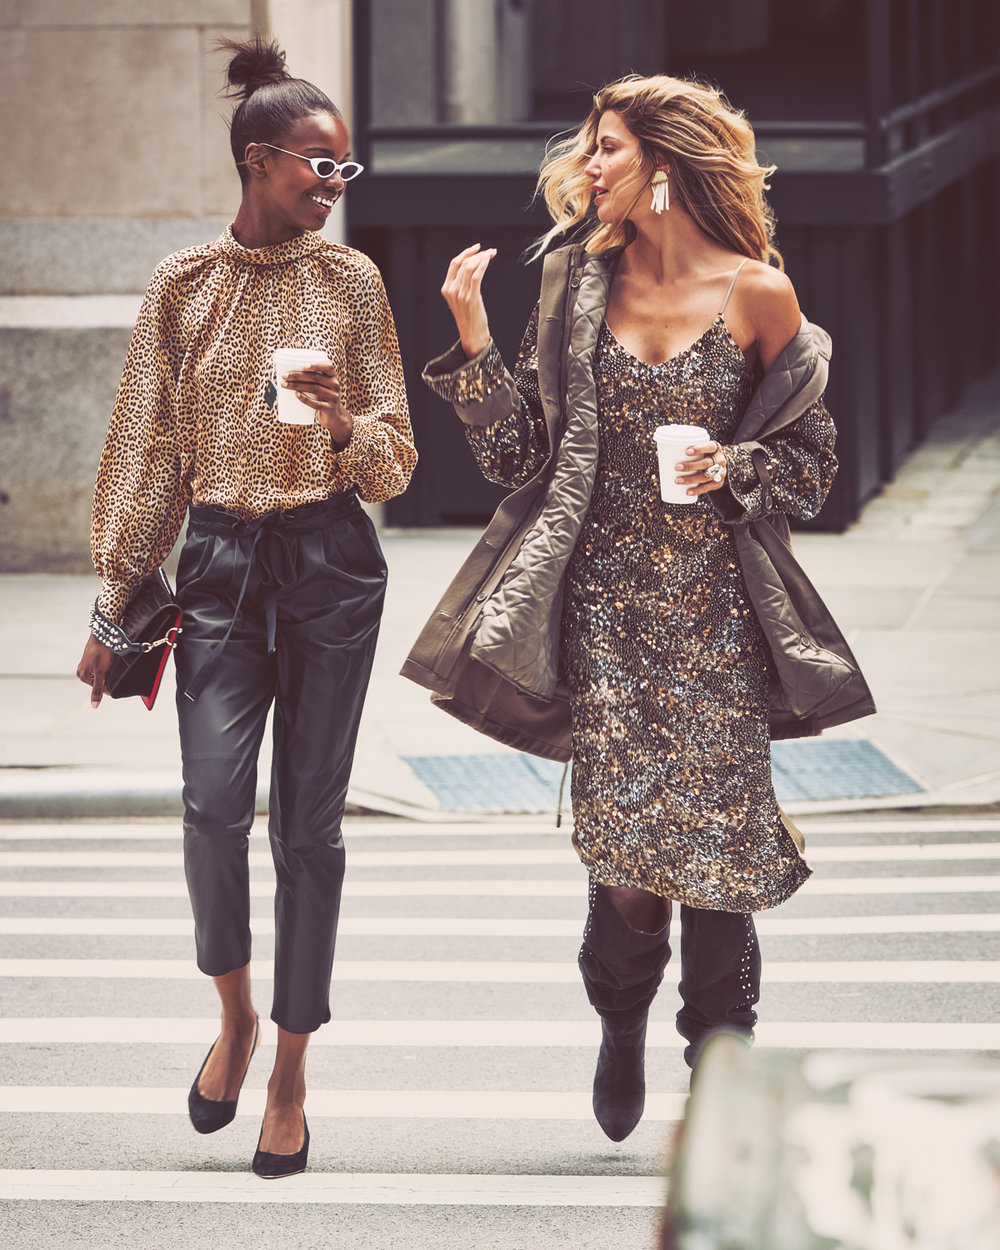 LEOMIE WEARS RAMY BROOK  TOP  AND  PANTS  I WEAR JOIE  DRESS ,  JACKET  AND  BOOTS